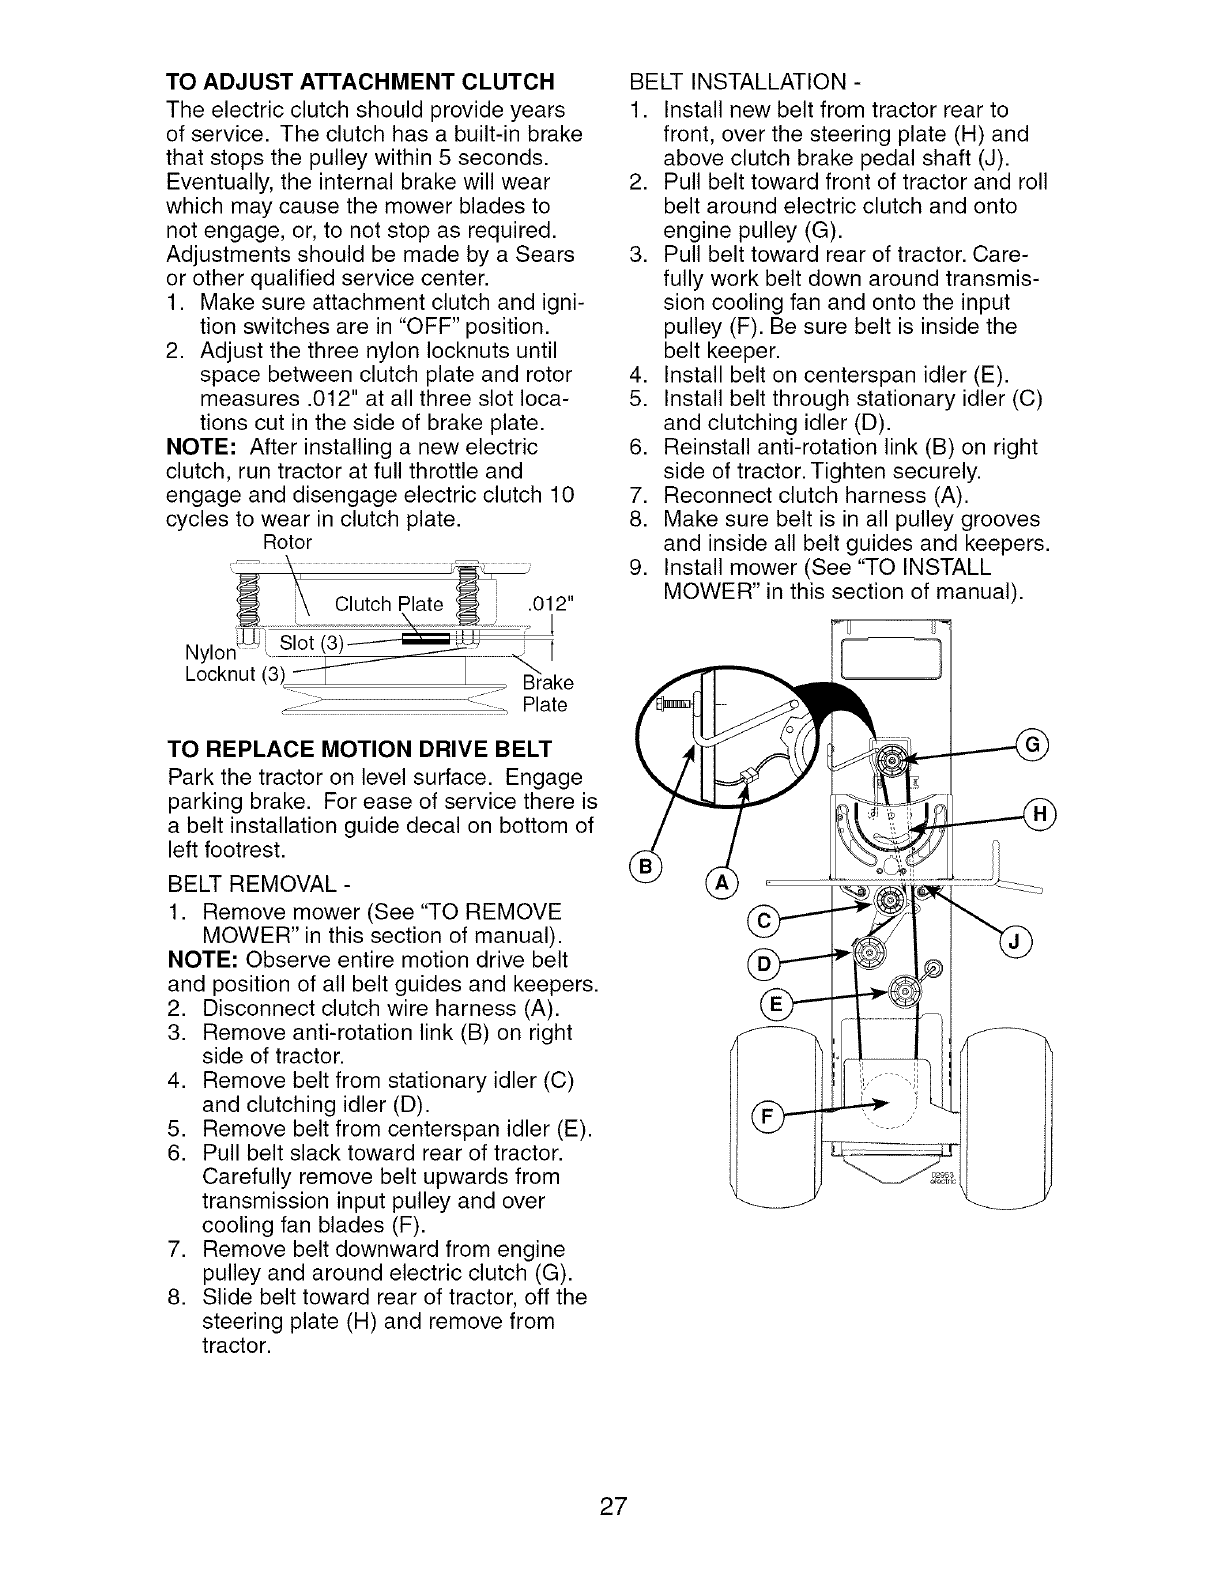 Lawn Mower Electric Clutch Adjustment : Page of craftsman lawn mower user guide